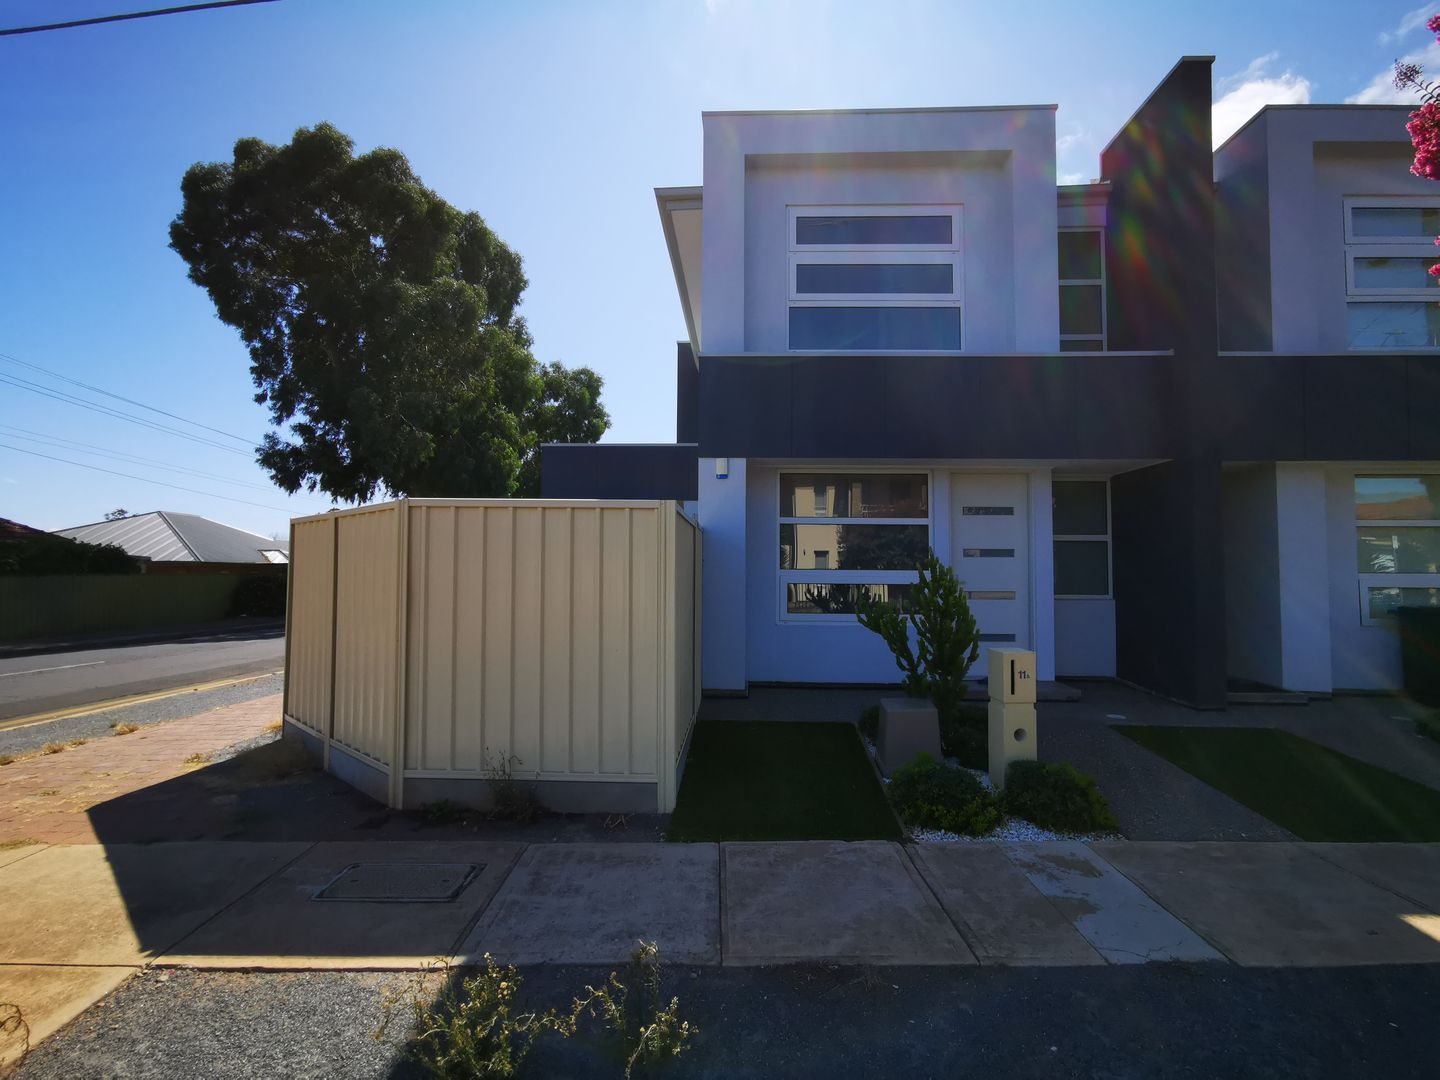 11A Piccadilly Crescent, Campbelltown SA 5074, Image 1